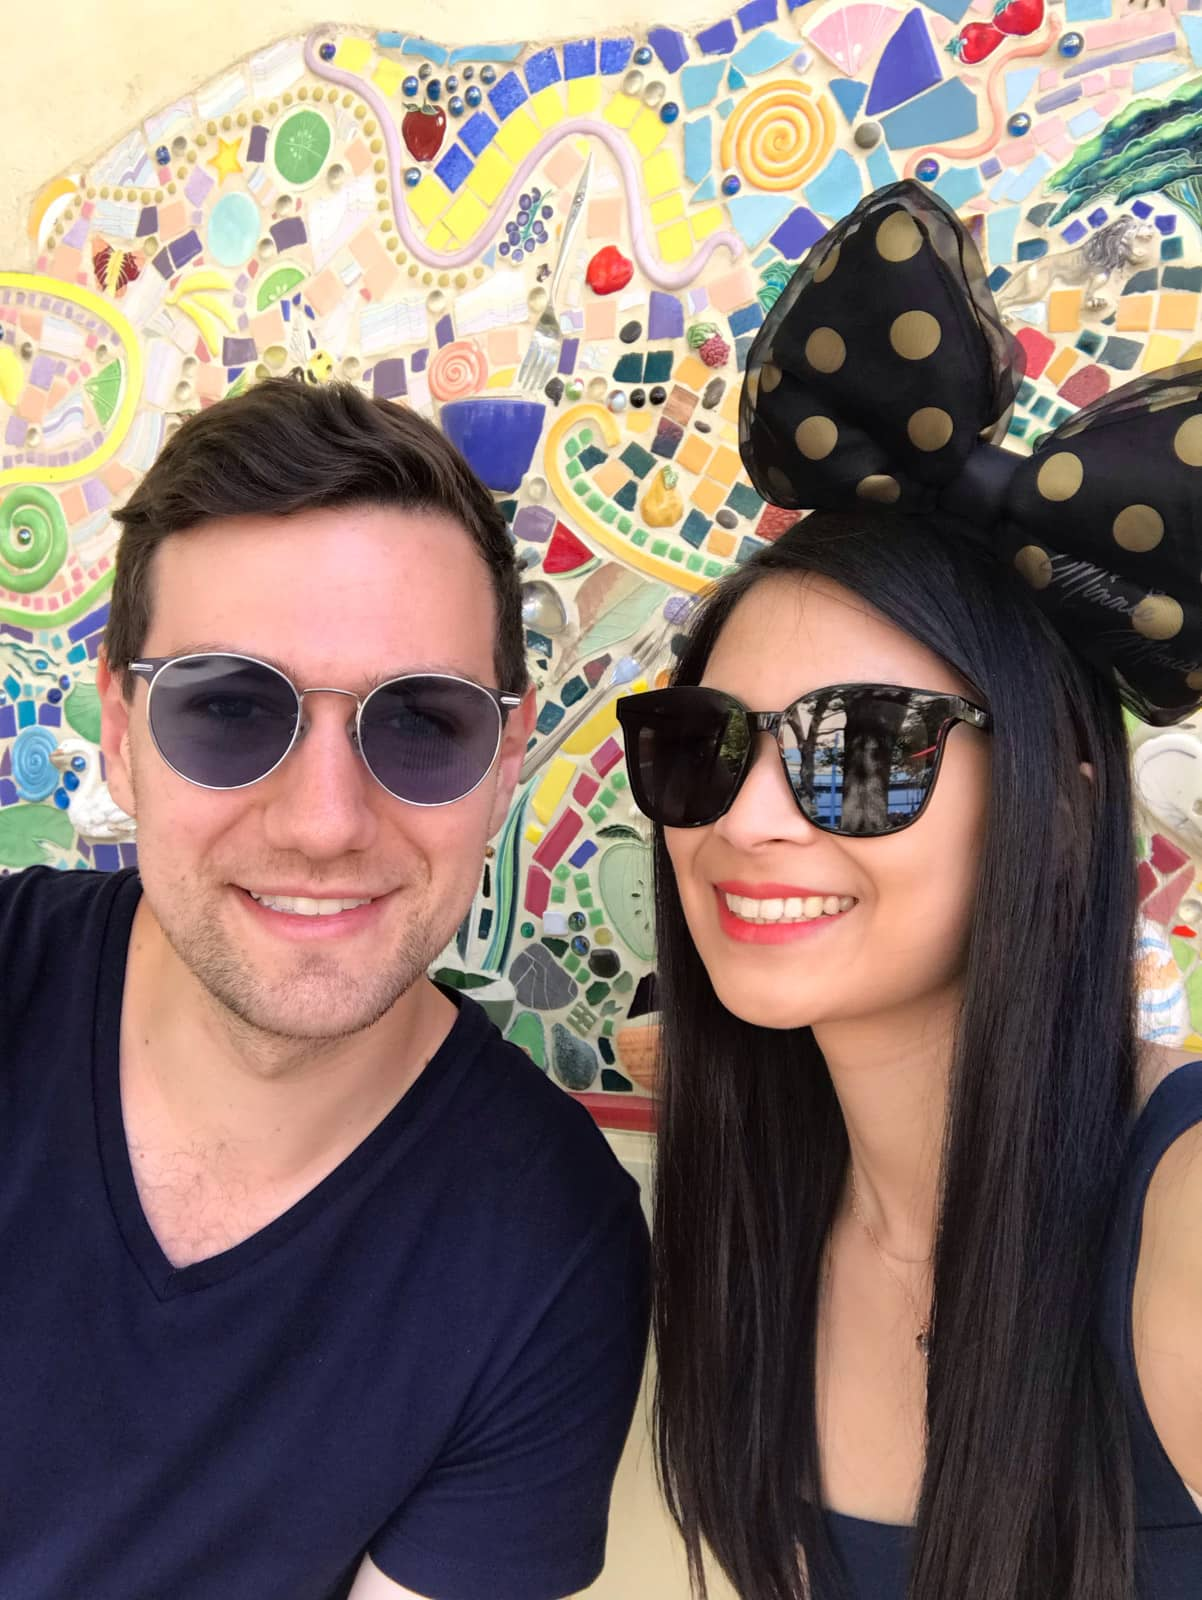 A man and woman in a selfie, in front of a colourful mosaic tile wall. They are both smiling and both wearing sunglasses. Both of them have dark hair. The woman is wearing a big bow on top of her head that is black with gold spots.